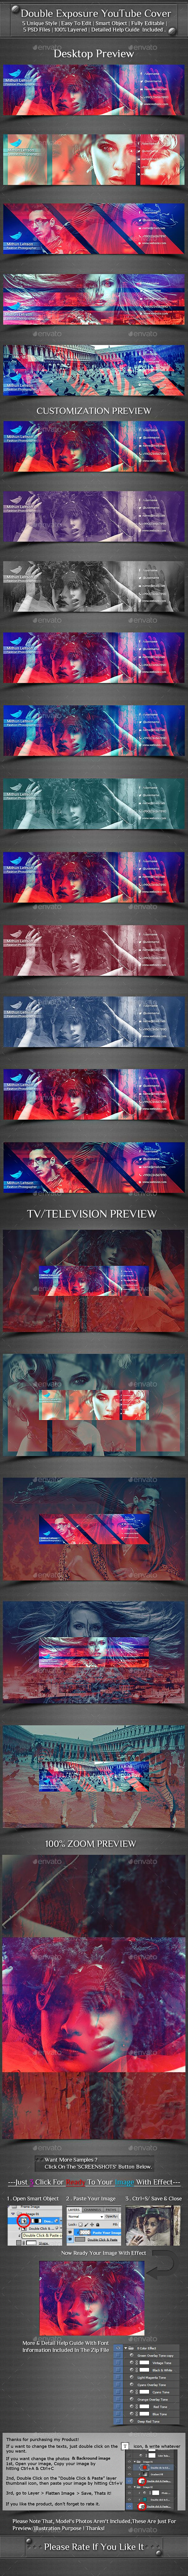 Double Exposure YouTube Cover Template PSD